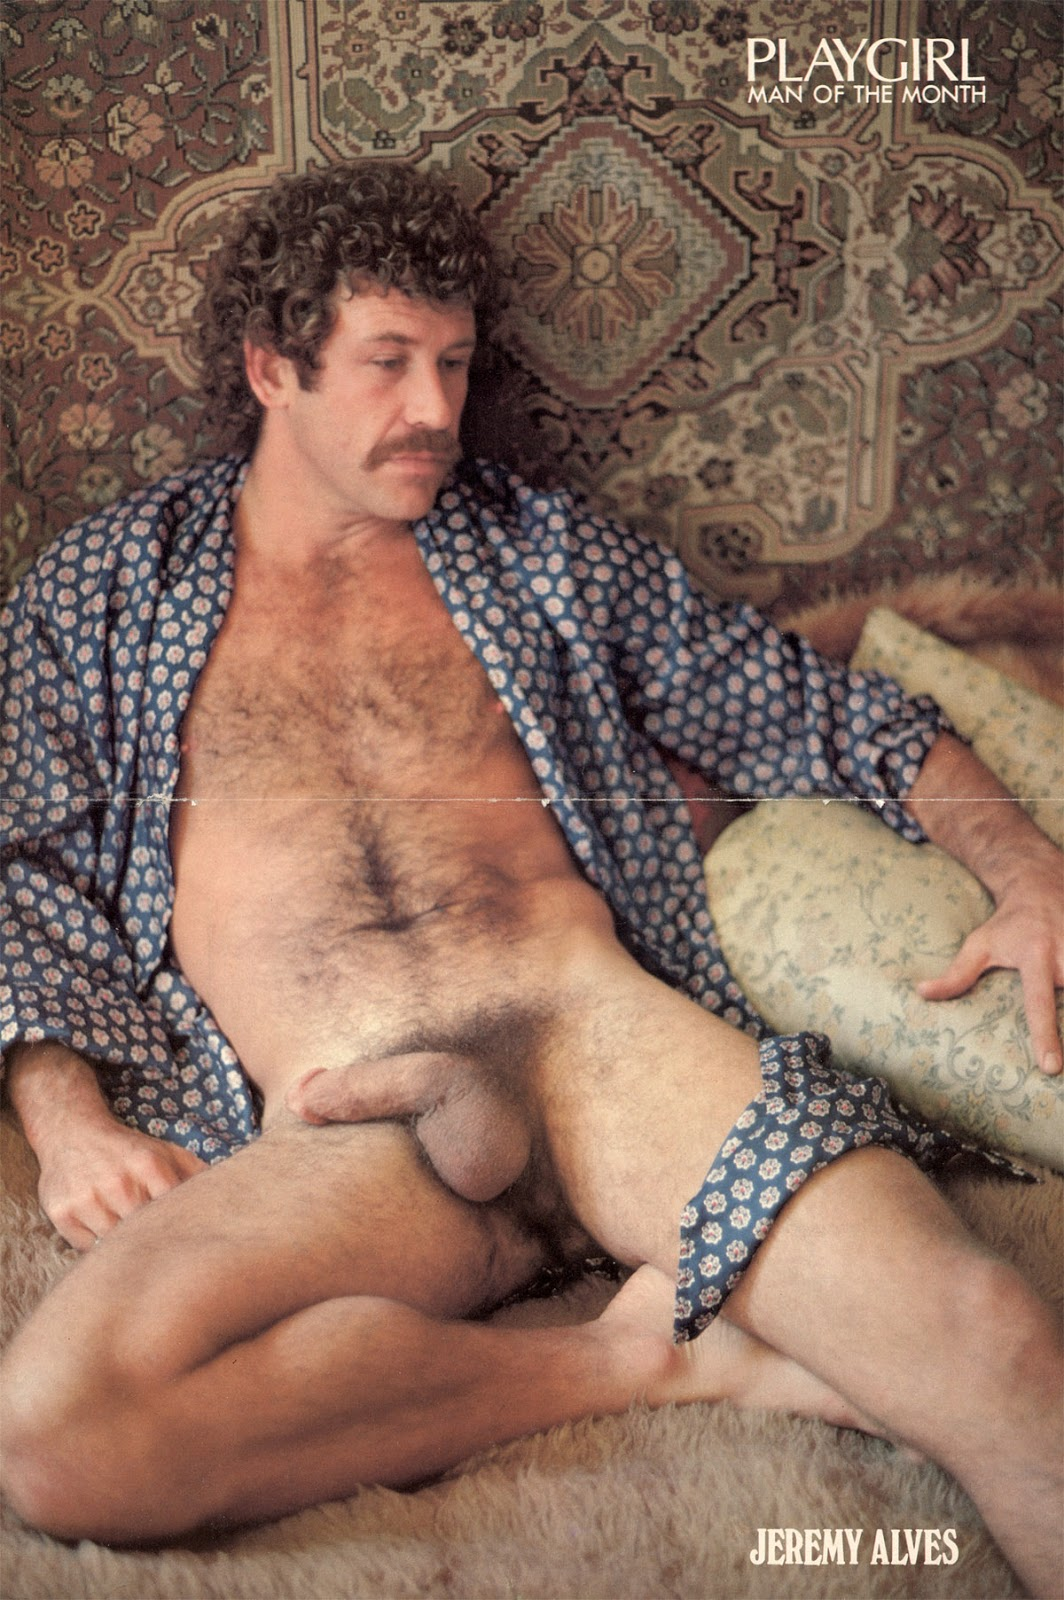 ron jeremy picture in playgirl